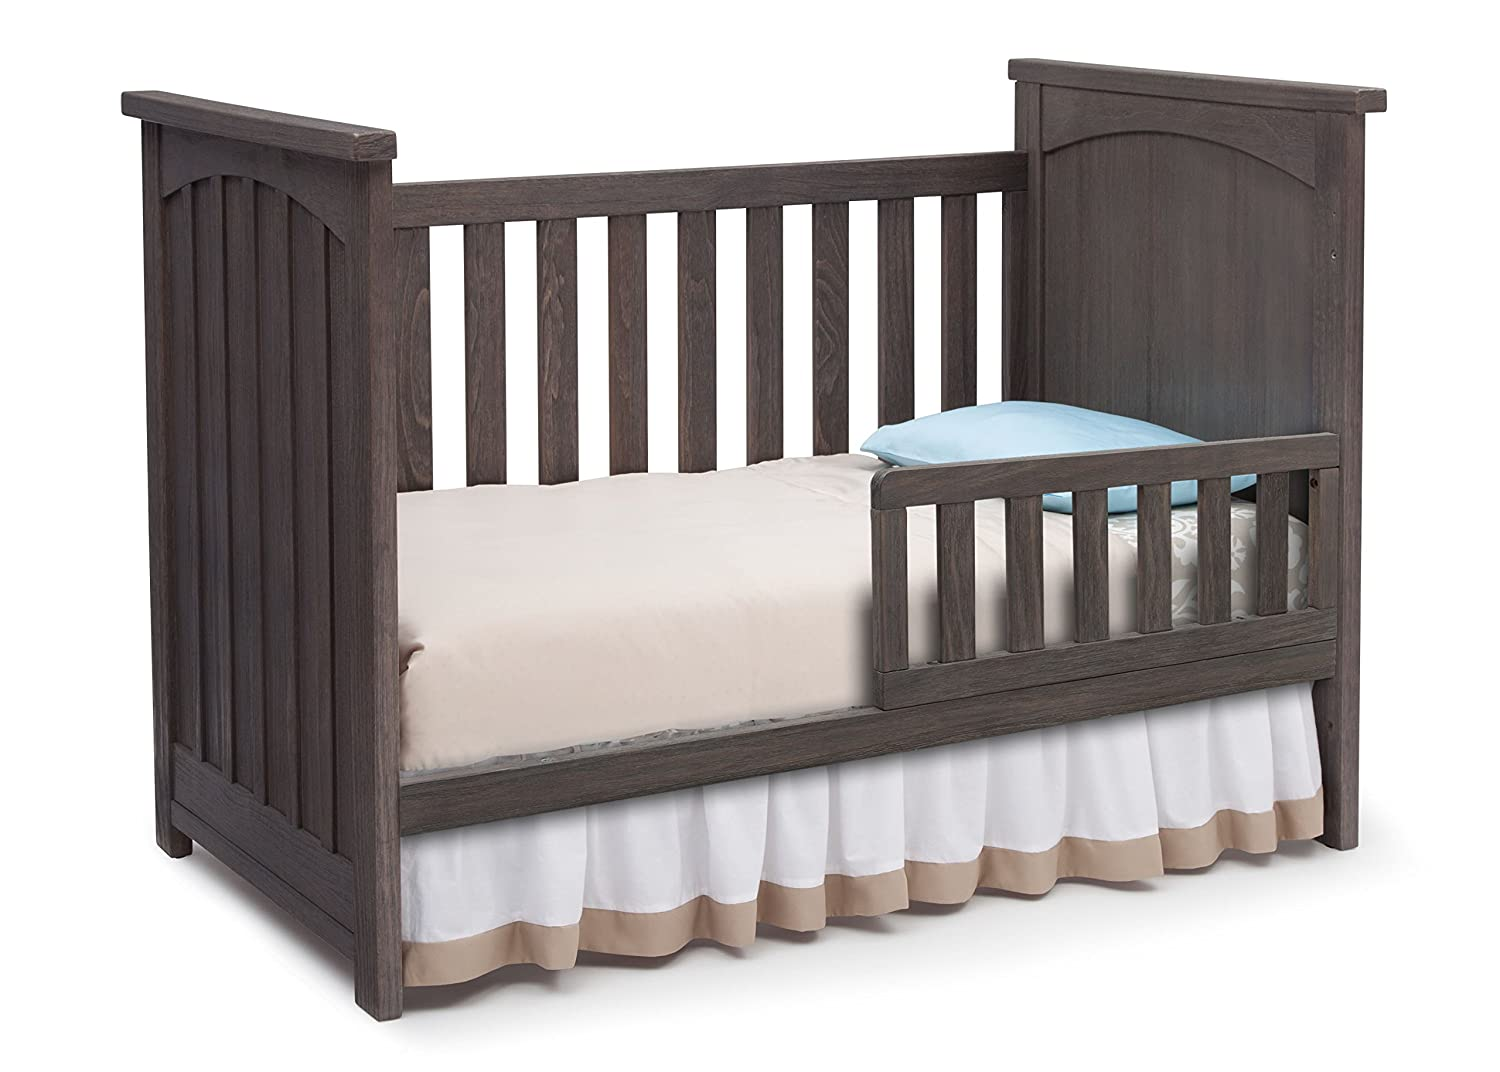 rustic crib furniture. amazoncom serta north 4piece nursery furniture set including free baby digital monitor ships separately crib 6 drawer dresser changing top and rustic v